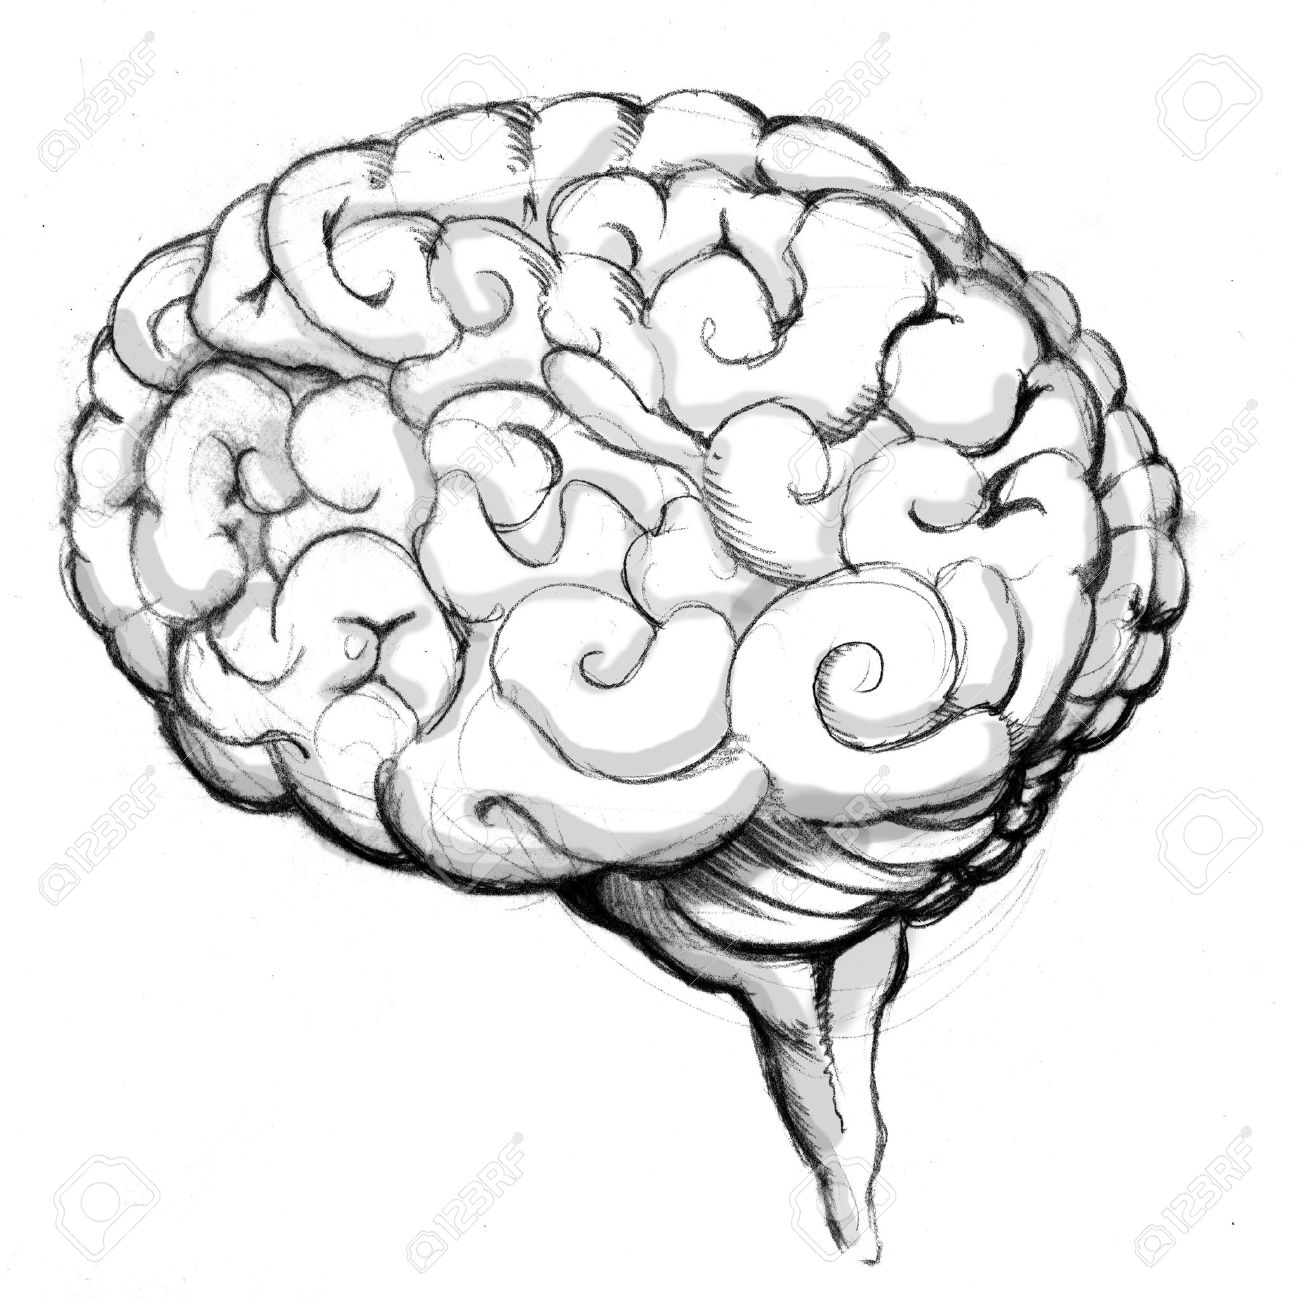 1300x1300 An Image Of A Human Brain Drawing. Stock Photo, Picture